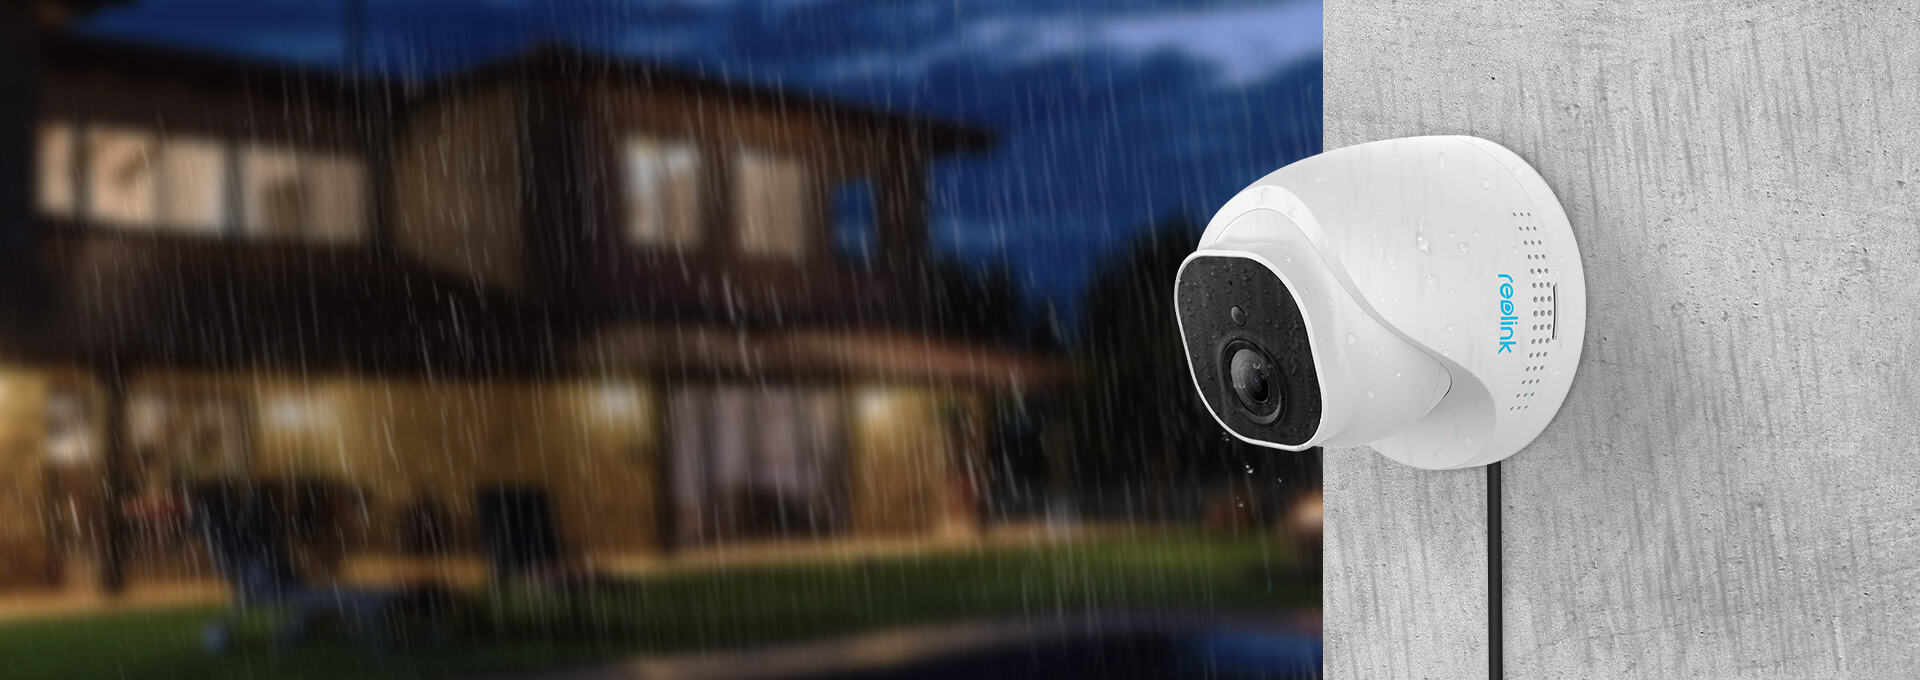 4K 8MP Surveillance Camera